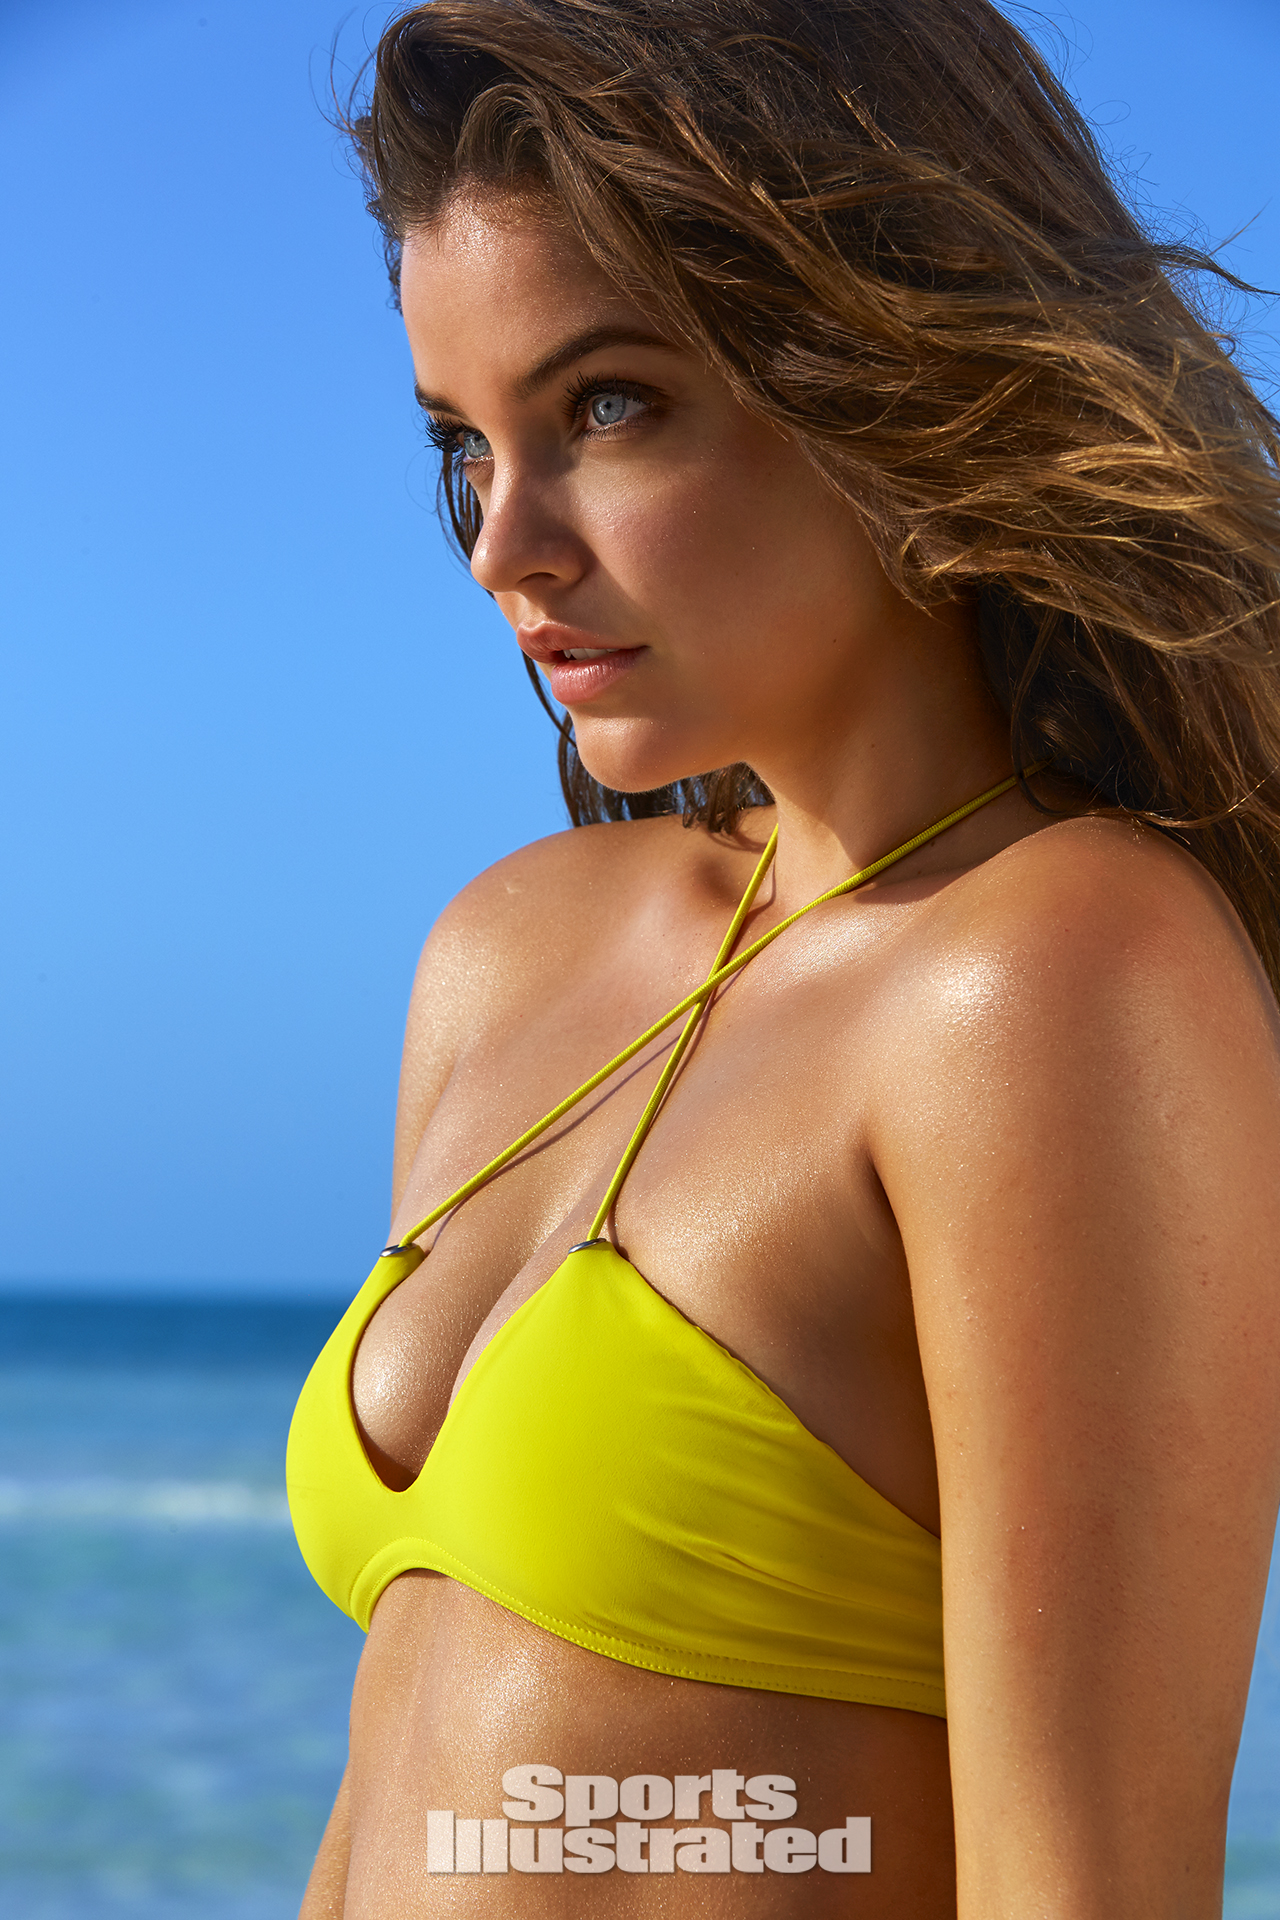 Barbara Palvin was photographed by James Macari in Turks & Caicos. Swimsuit by Karla Colletto.